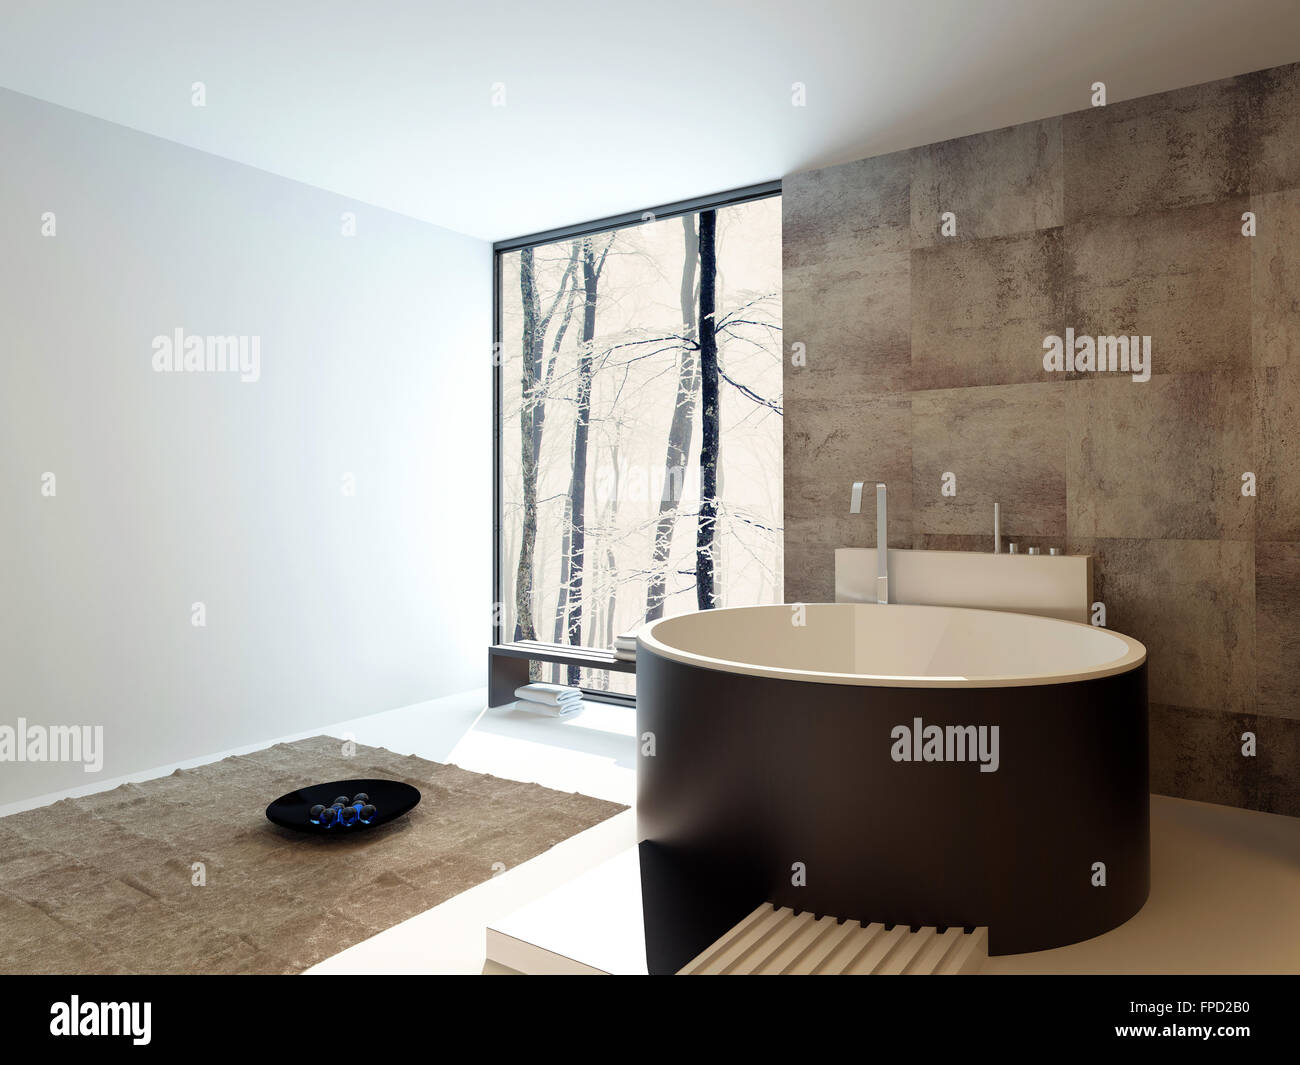 Contemporary design luxury bathroom interior with a freestanding ...